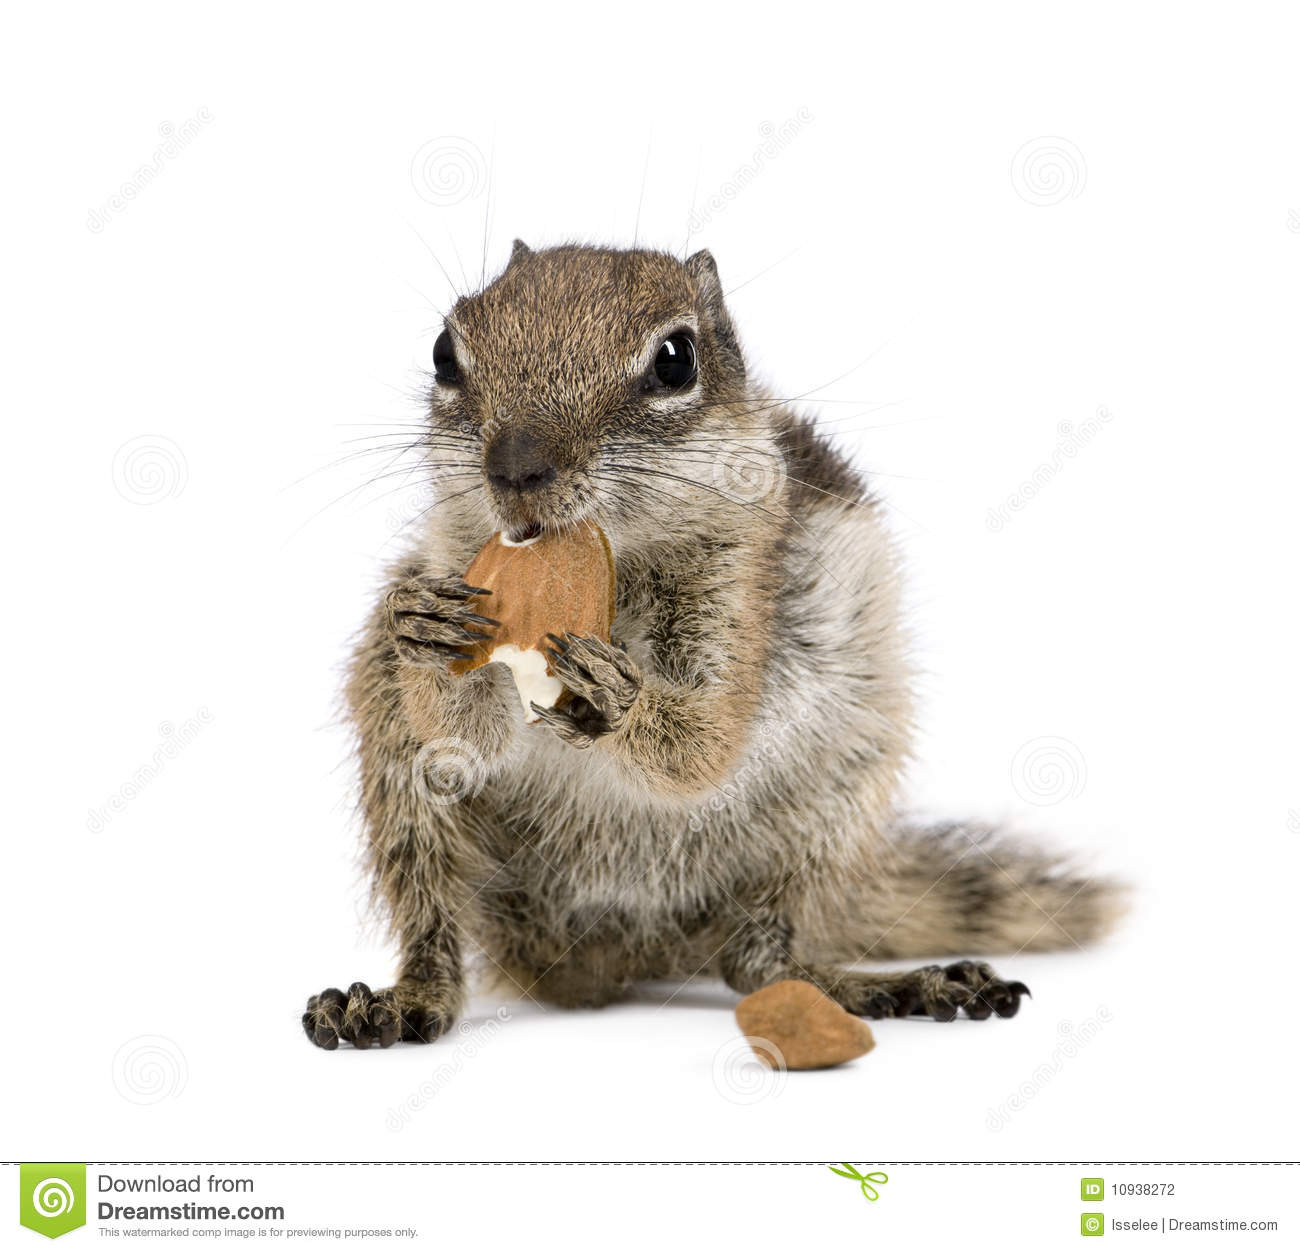 Barbary Ground Squirrel clipart #10, Download drawings